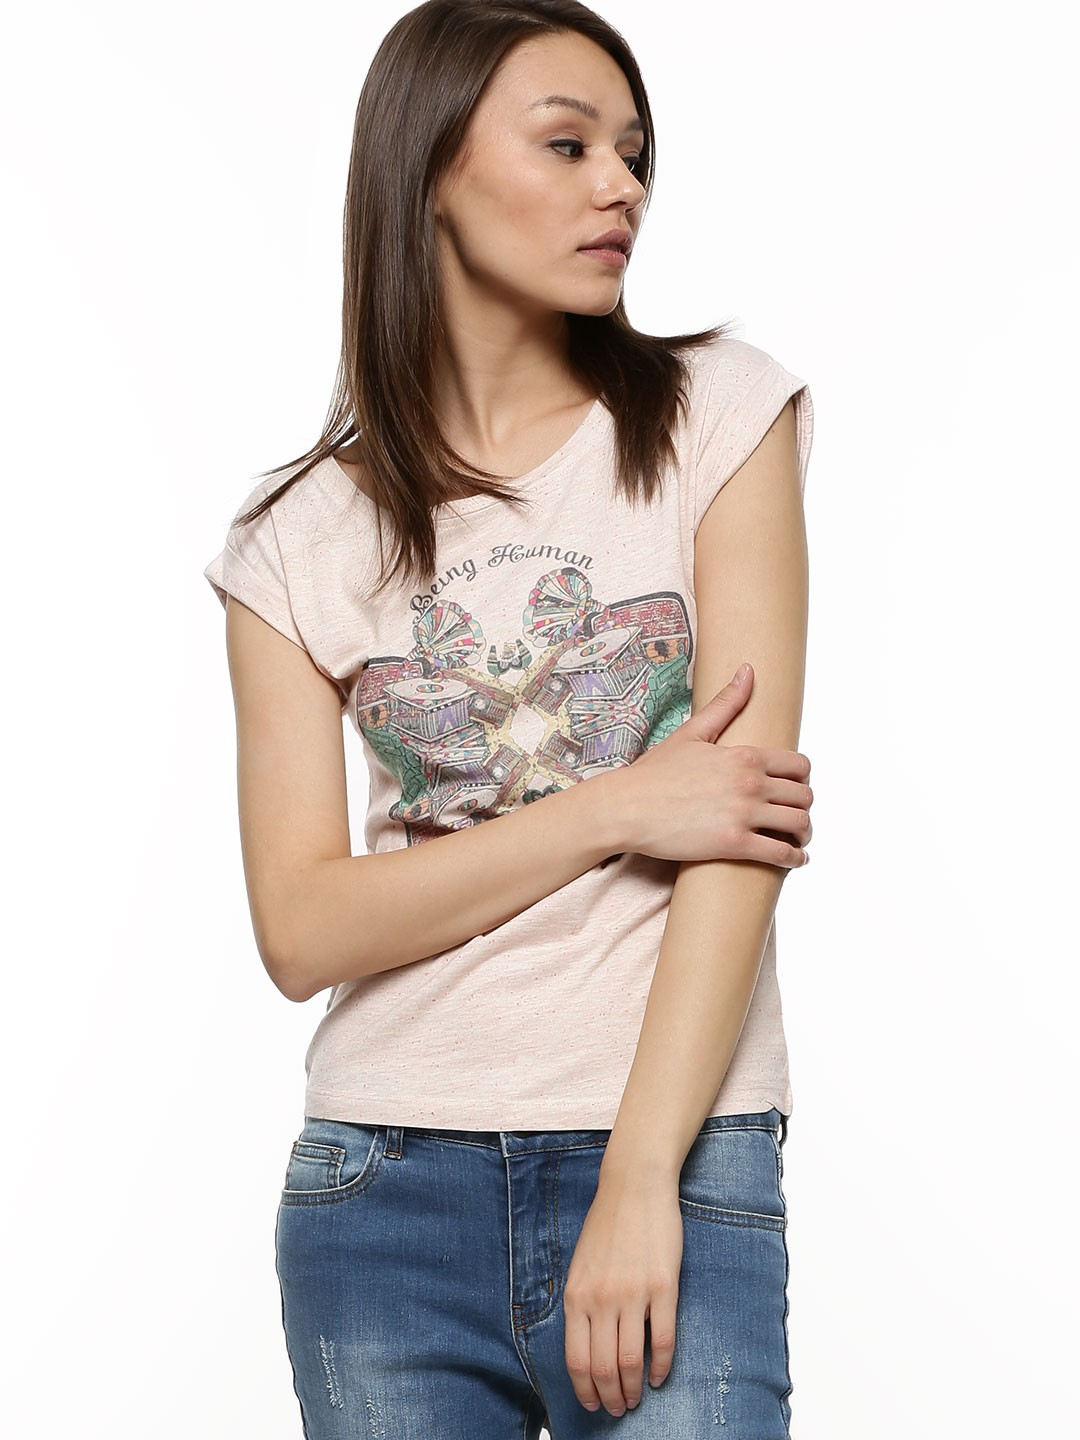 Buy being human printed t shrit for women women 39 s peach for Being human t shirts buy online india